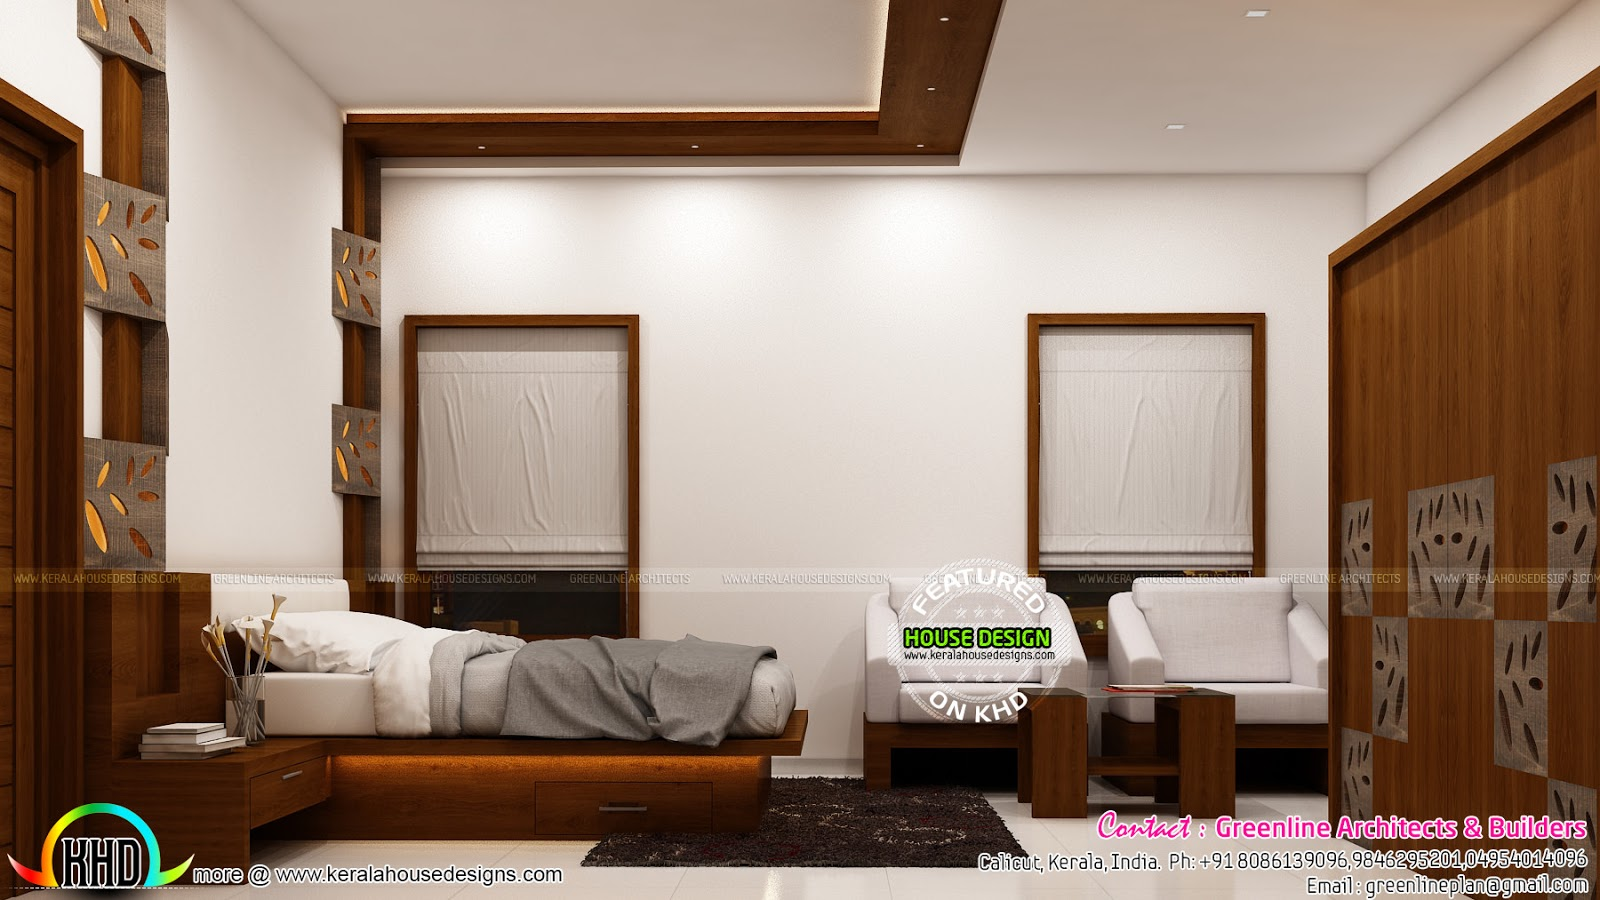 Interior designs of master bedroom kerala home design for Interior designs in kerala